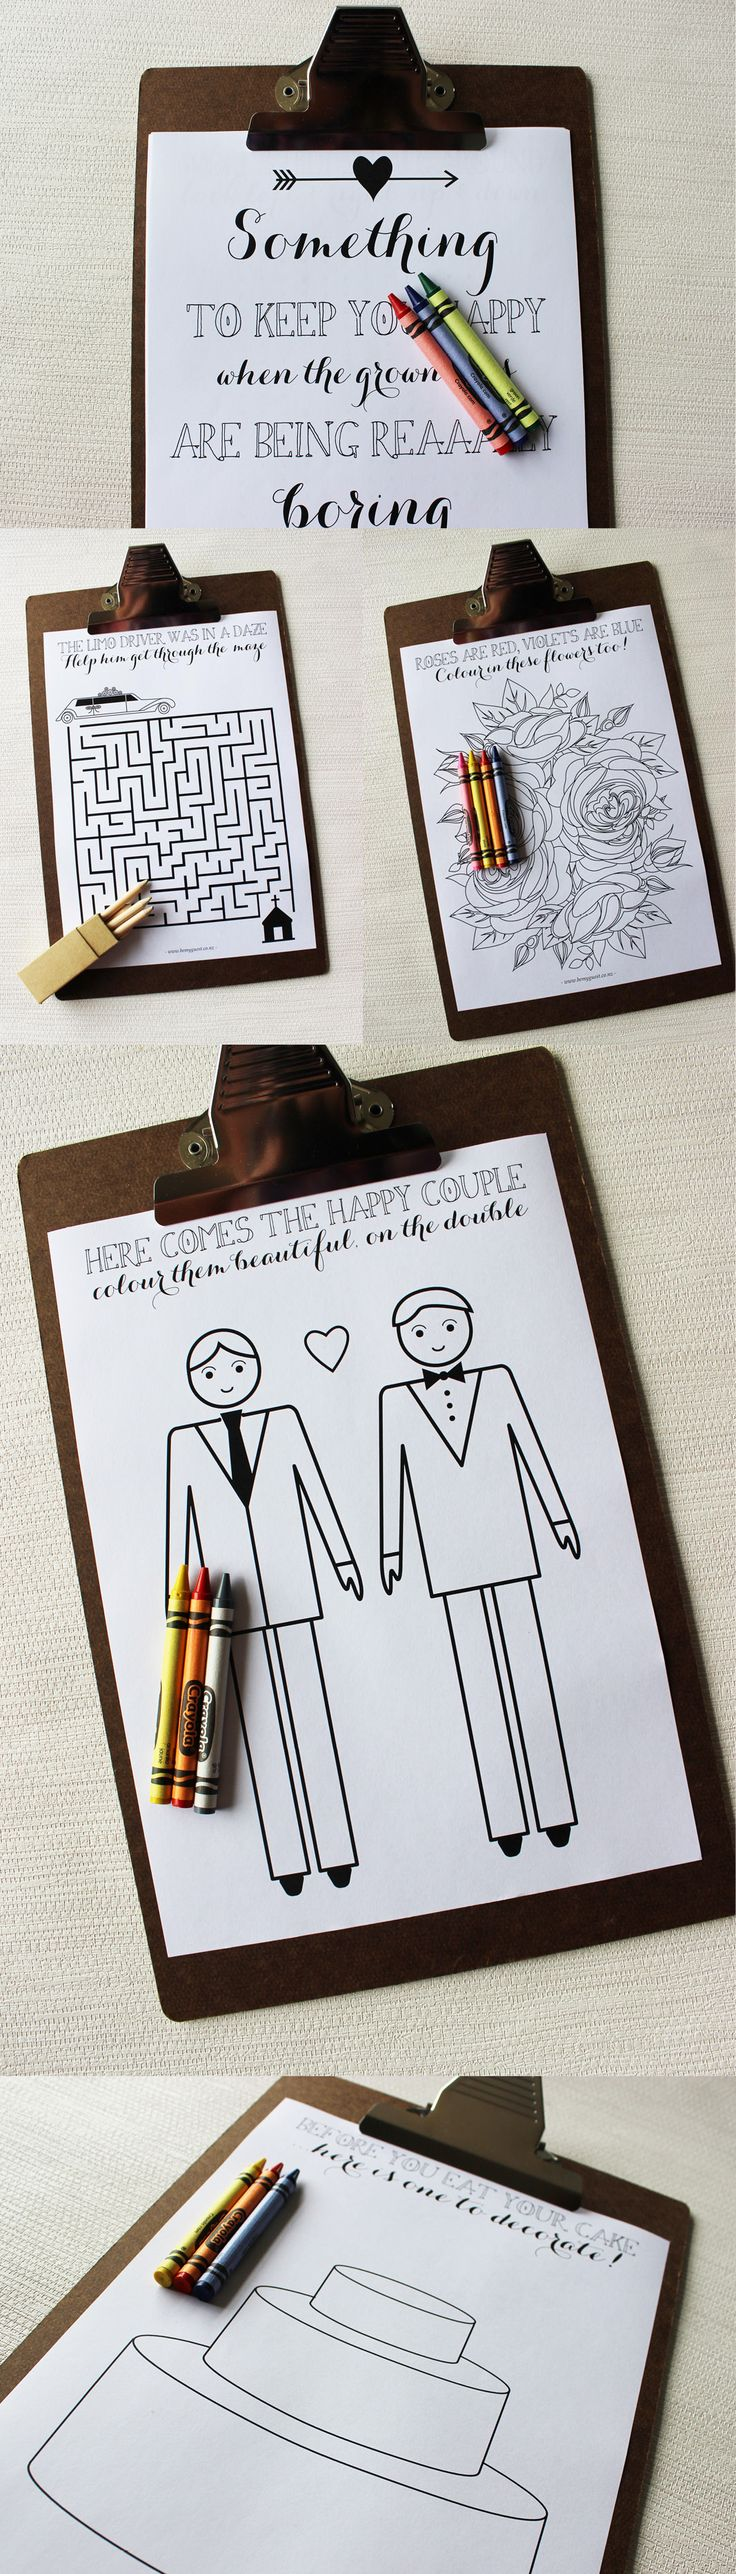 Long Grooms LGBT Friendly Childrens Activity Book on Clipboard